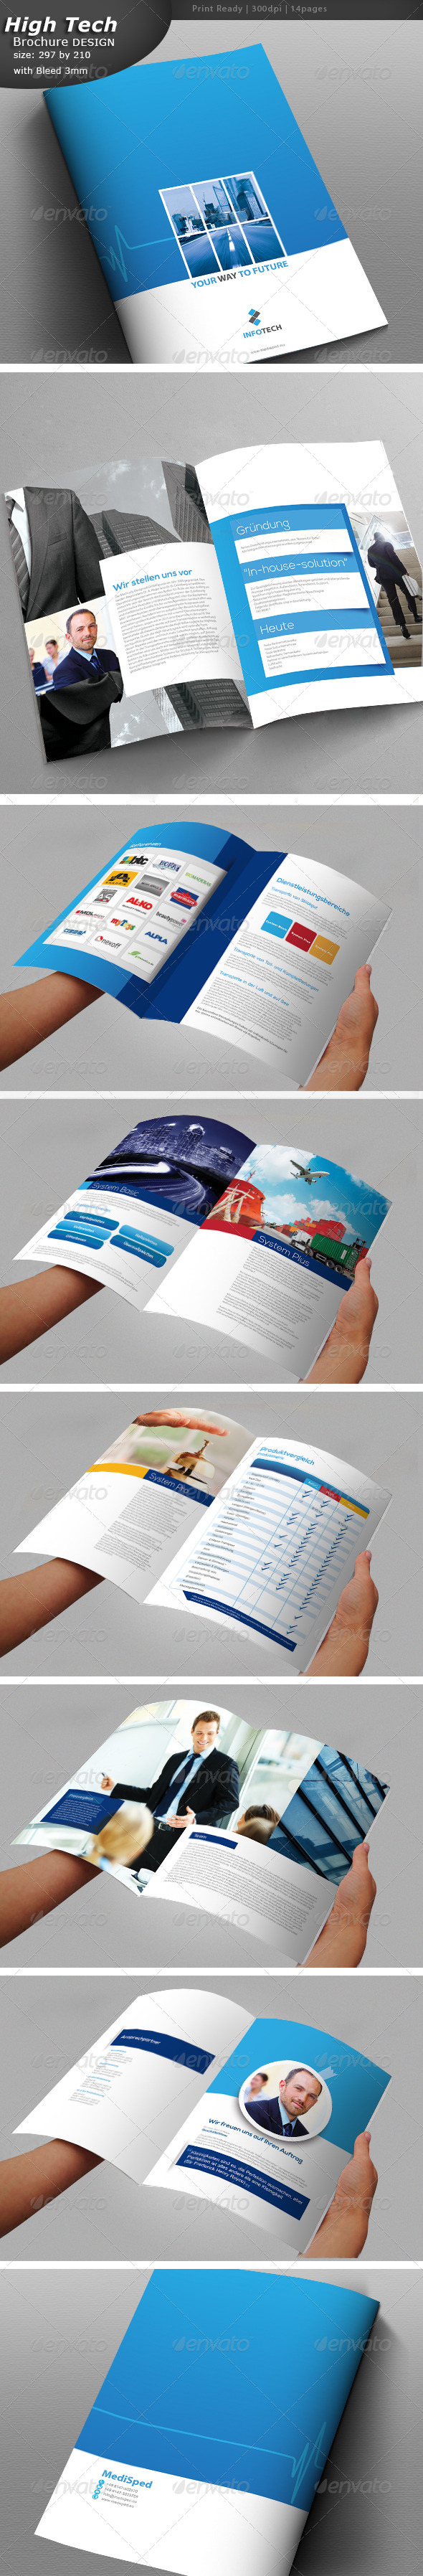 GraphicRiver Industrial Brochure Design 7396267